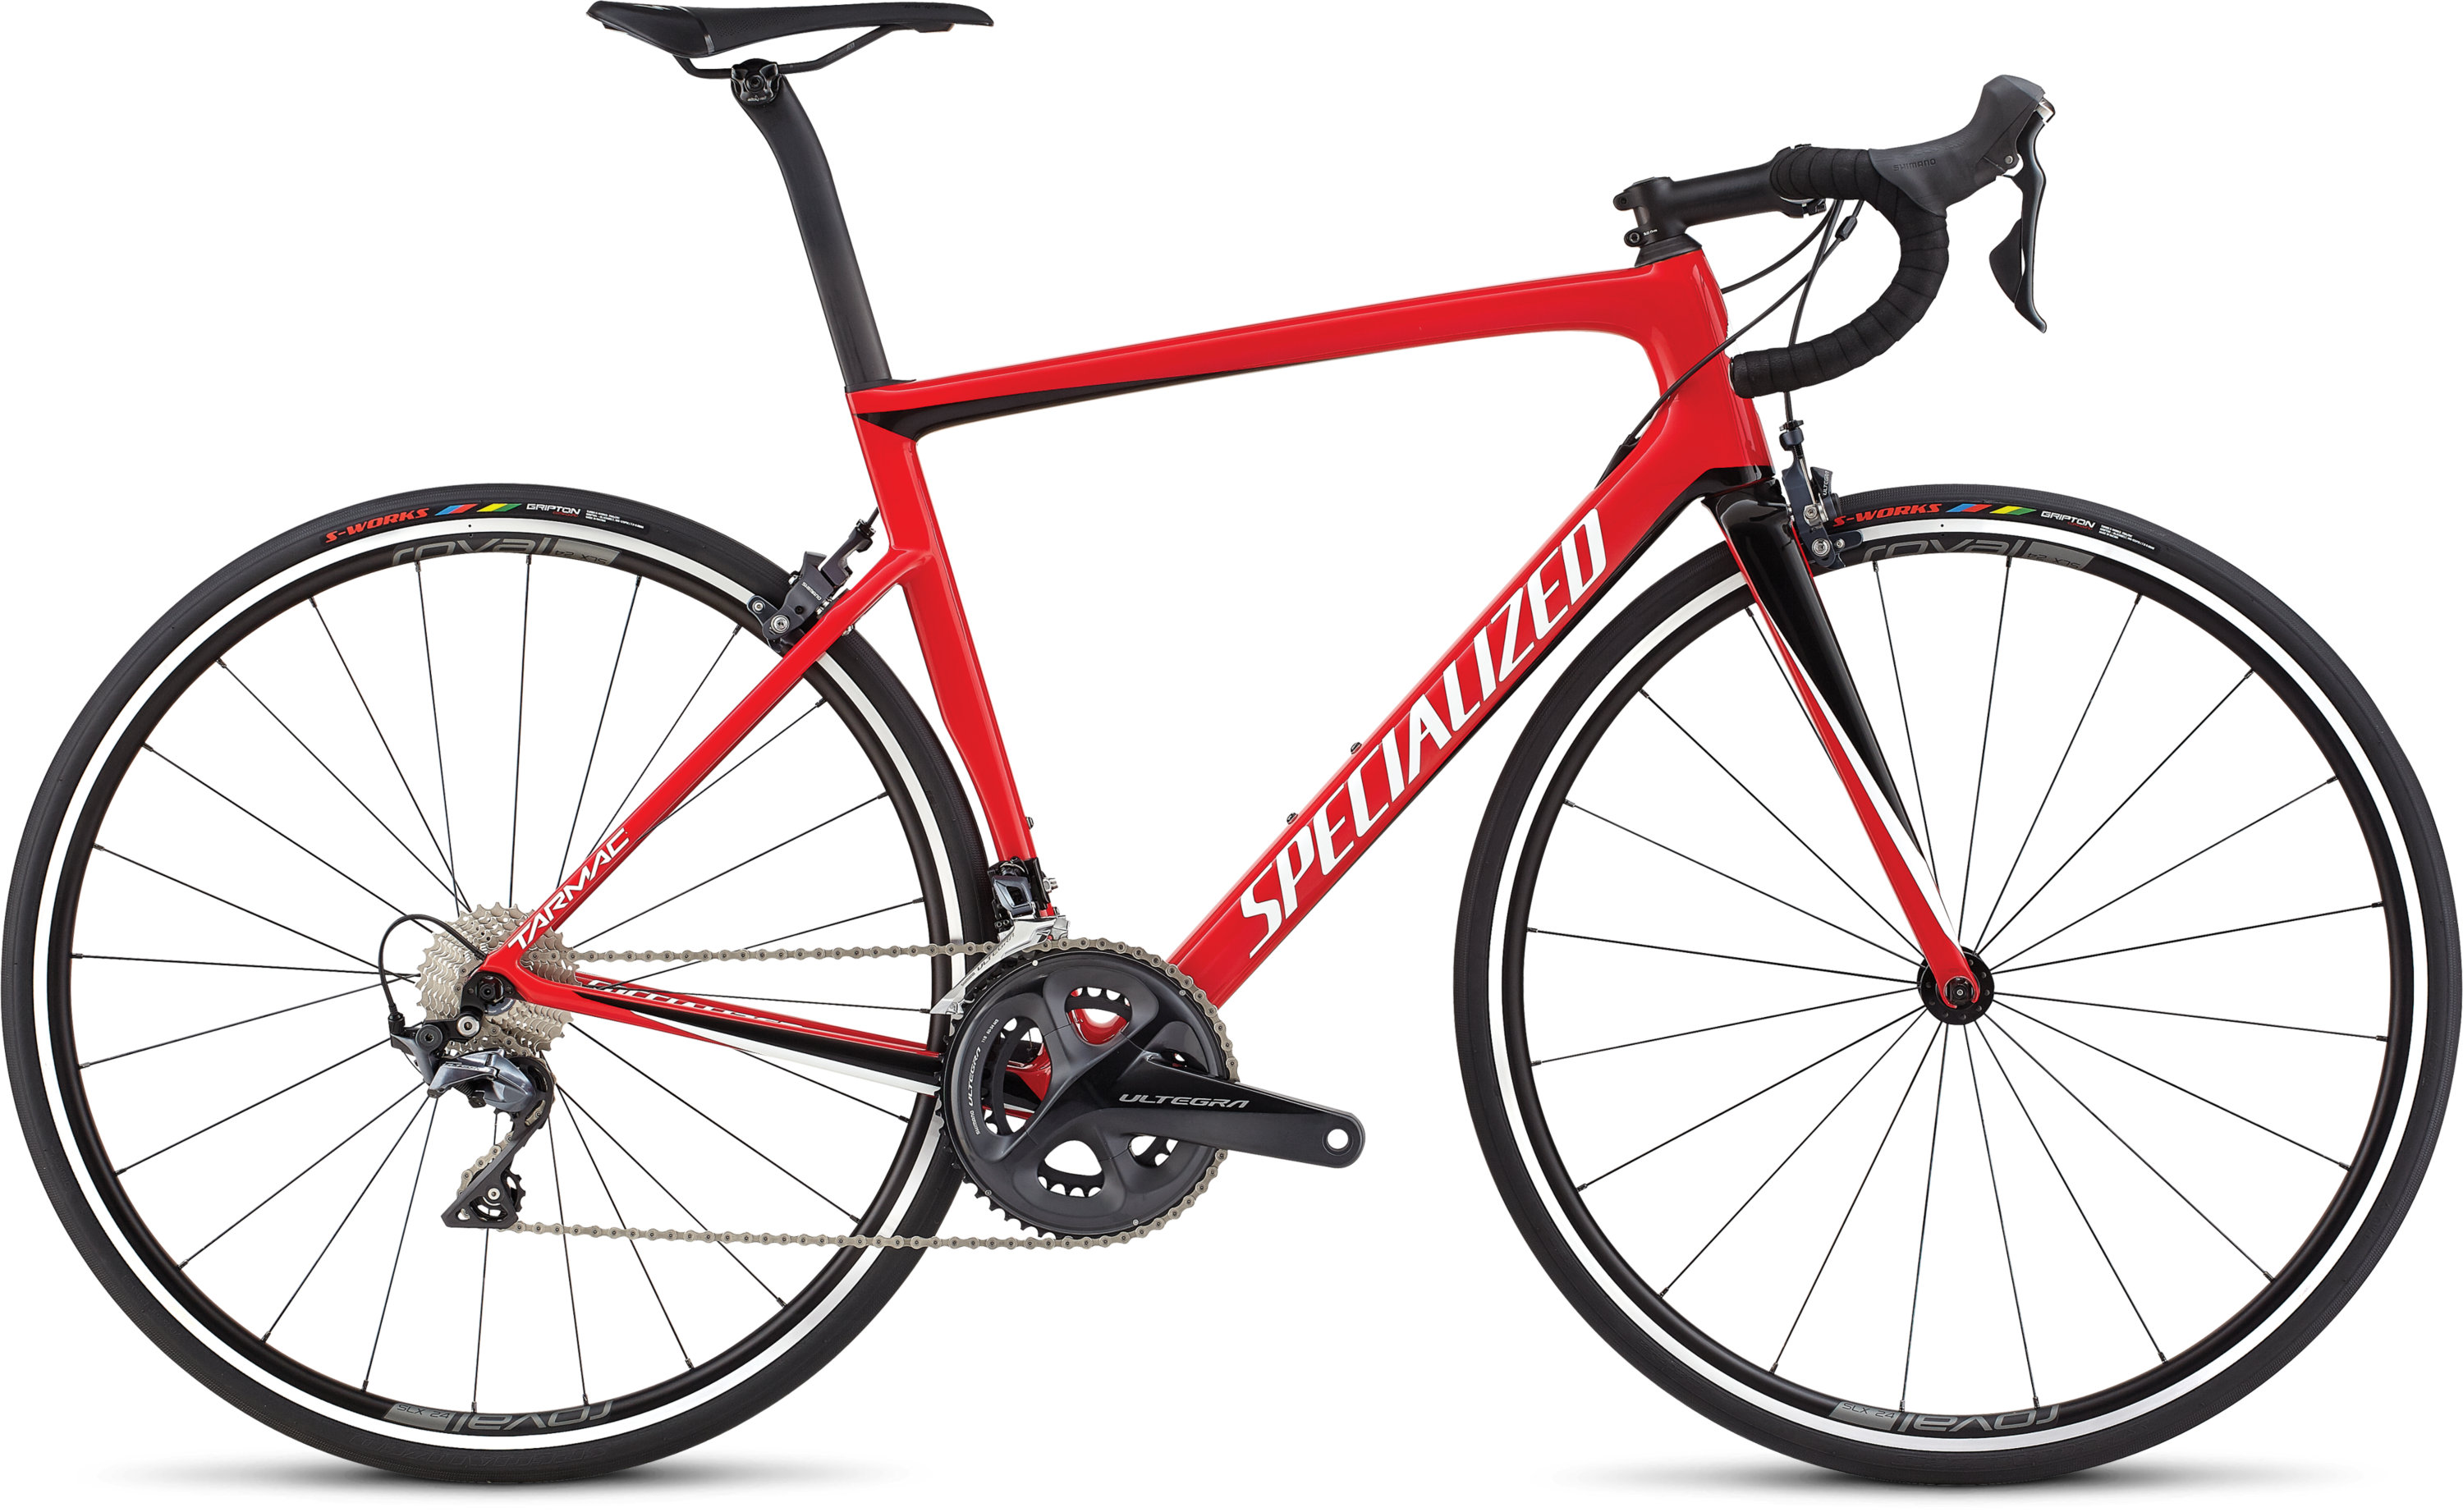 Specialized Men´s Tarmac Expert Flo Red/Metallic White Silver/Tarmac Black 56 - Specialized Men´s Tarmac Expert Flo Red/Metallic White Silver/Tarmac Black 56